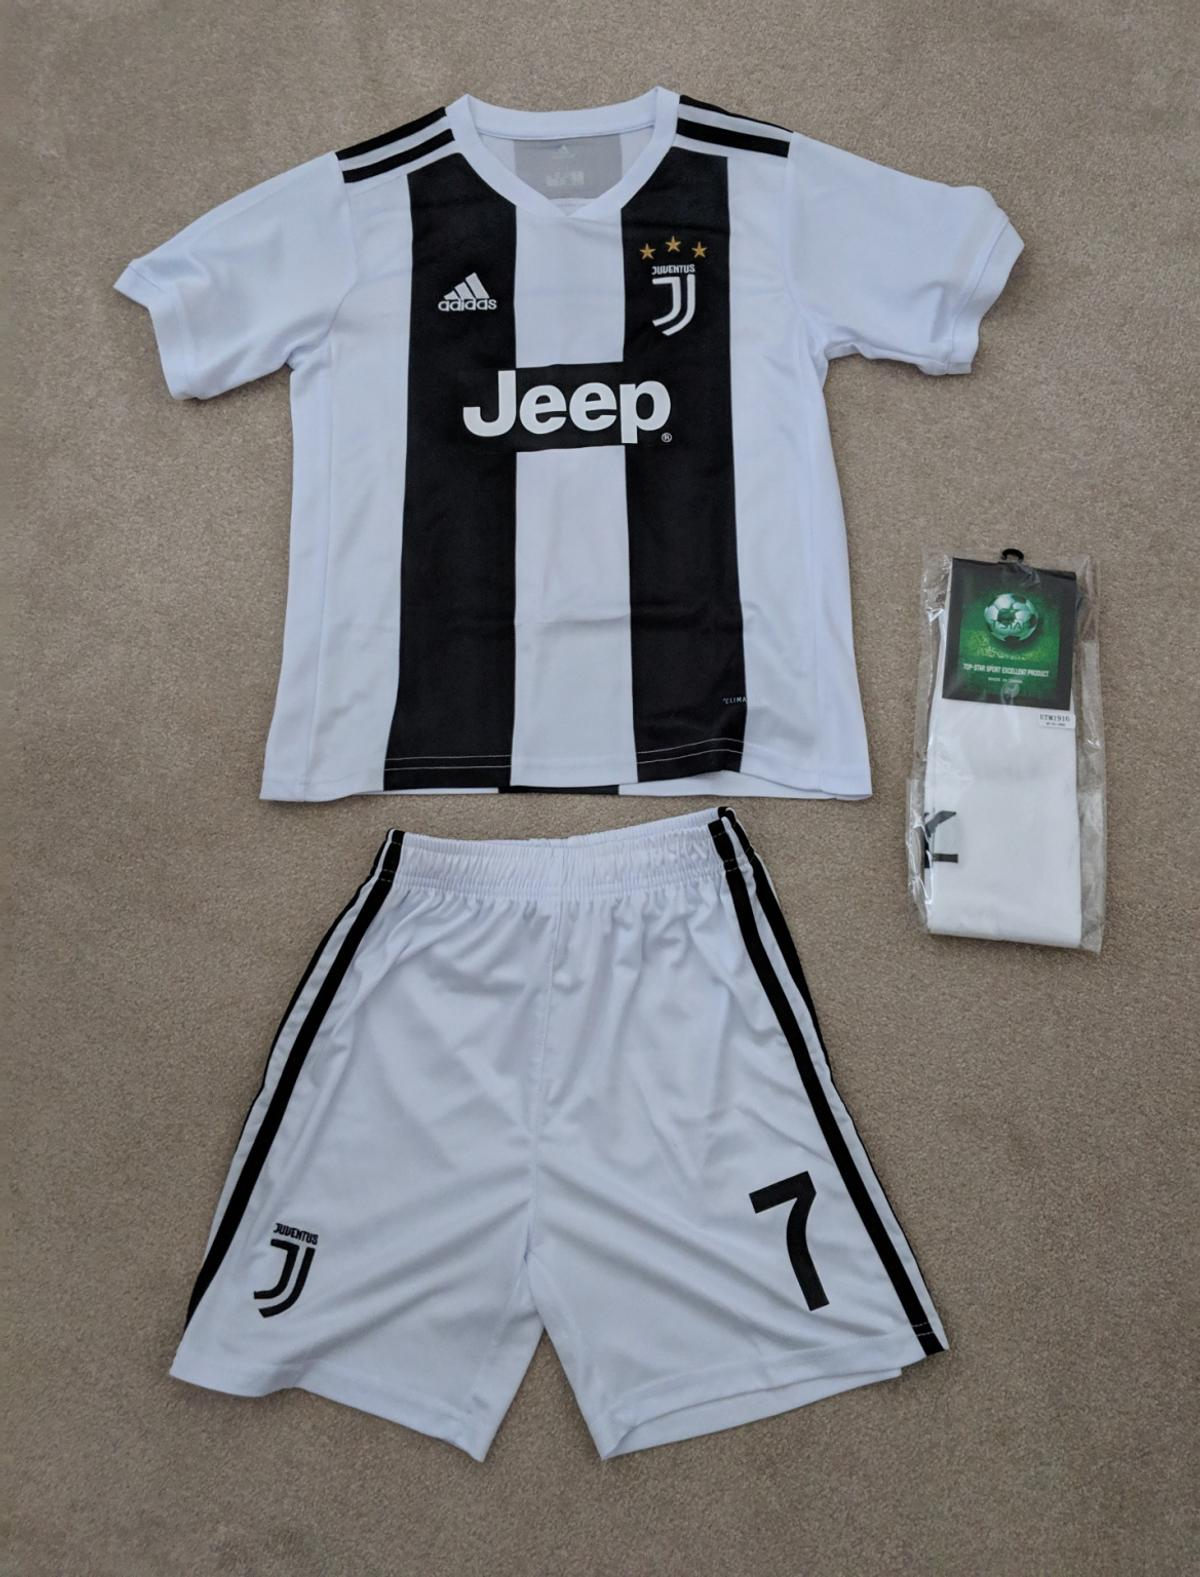 4371a4fd2 Juventus  RONALDO 7  Home Kit 2018 19 in WA10 Helens for £30.00 for ...